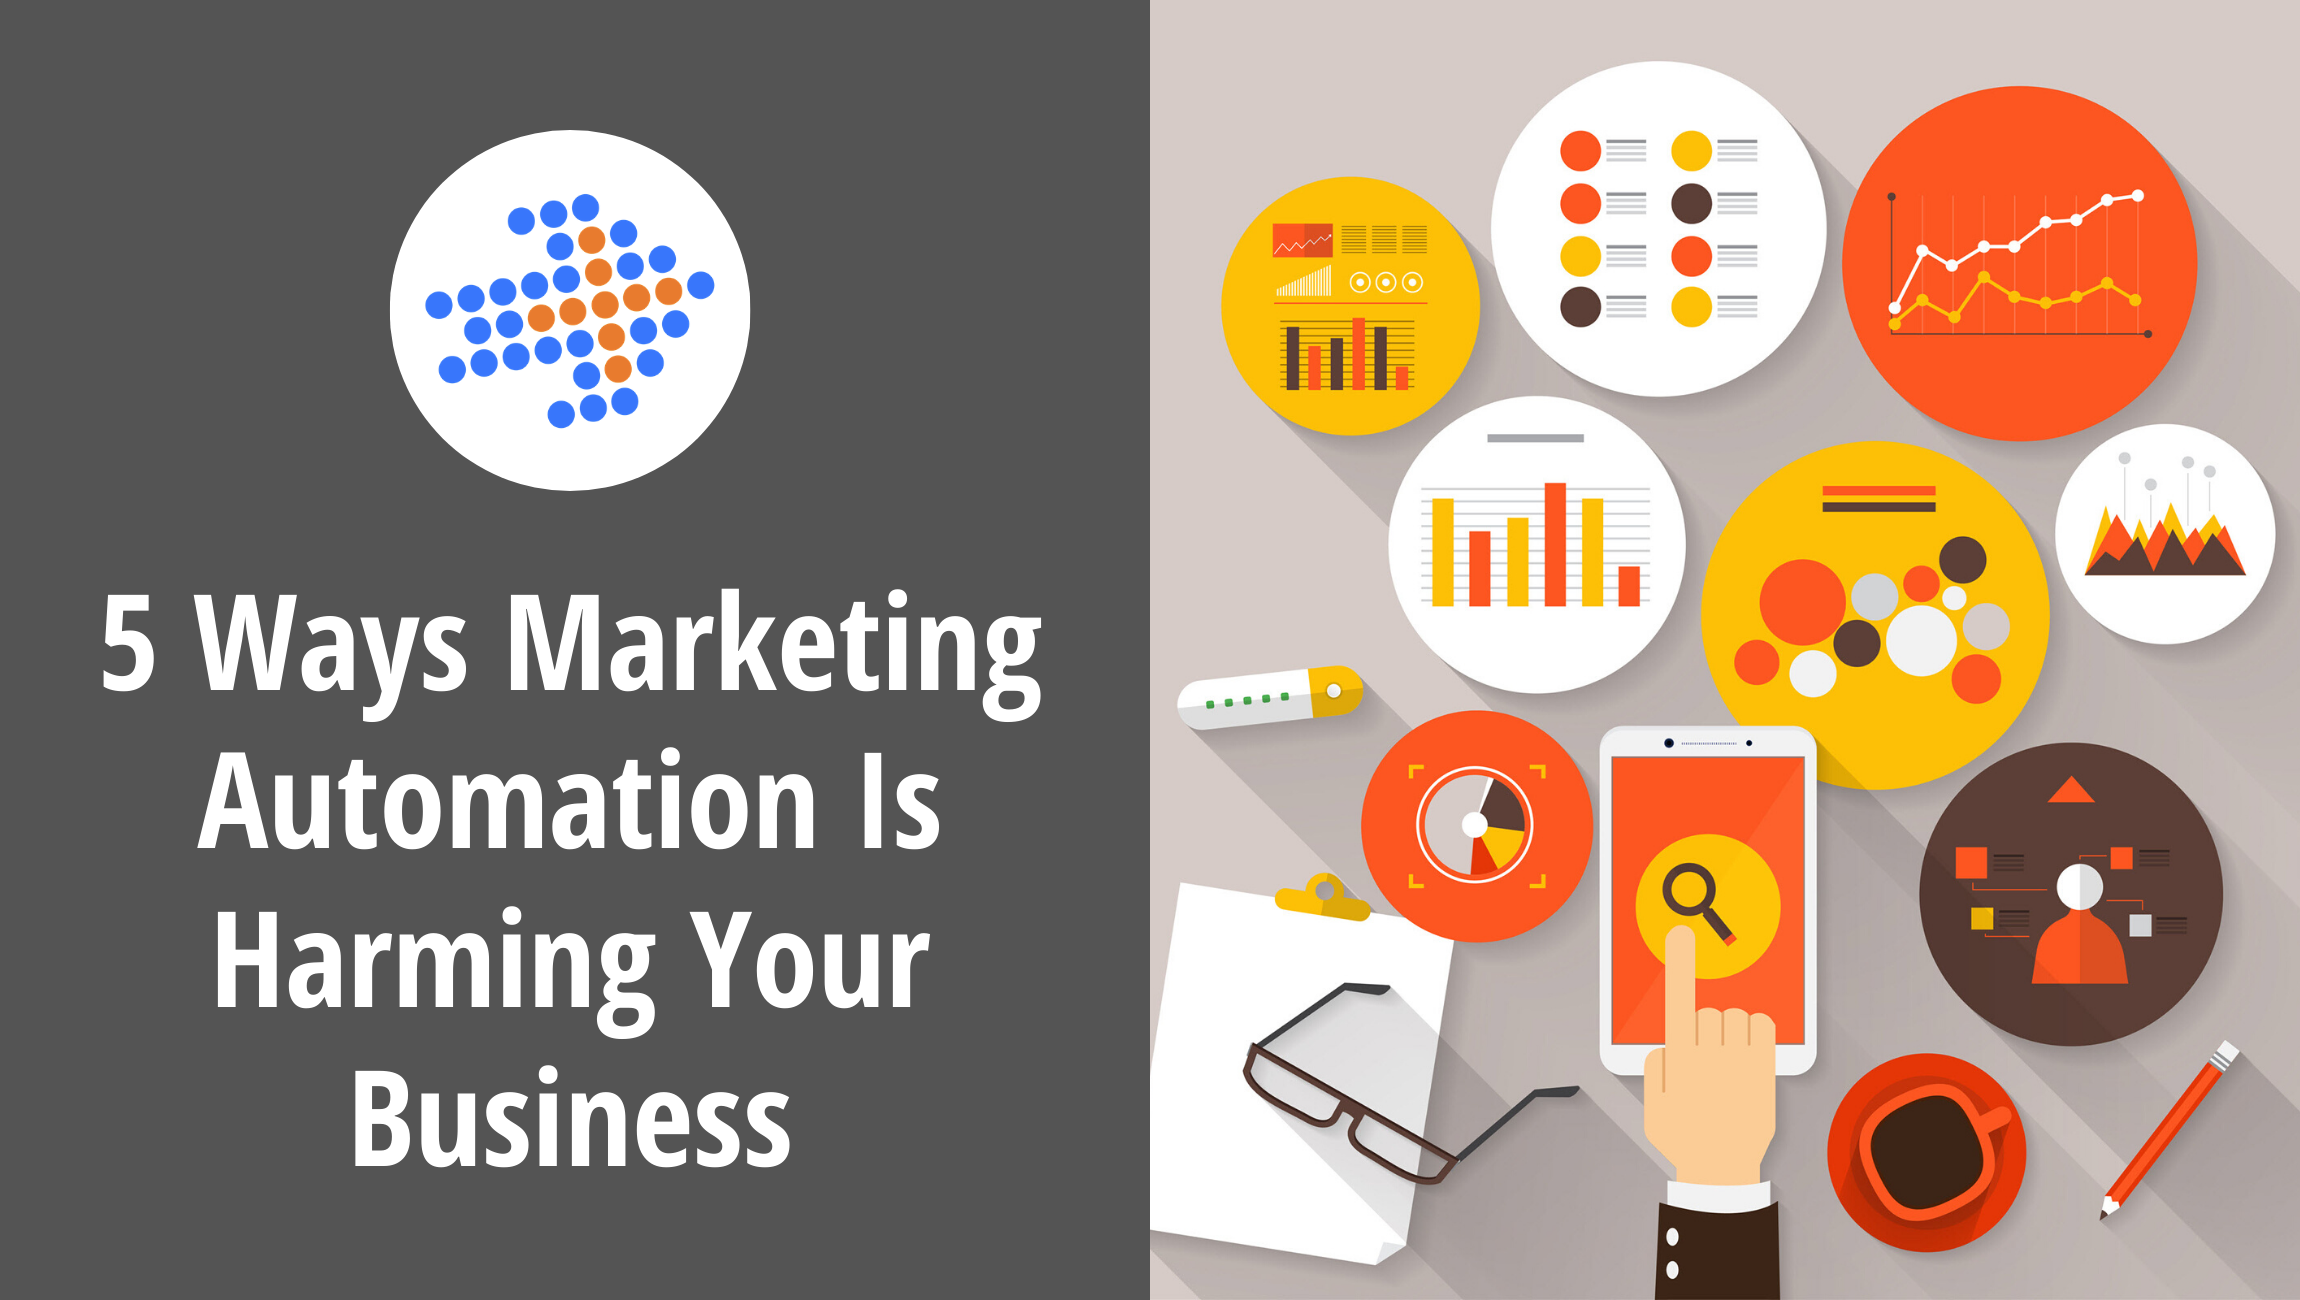 5 Ways Marketing Automation Is Harming Your Business